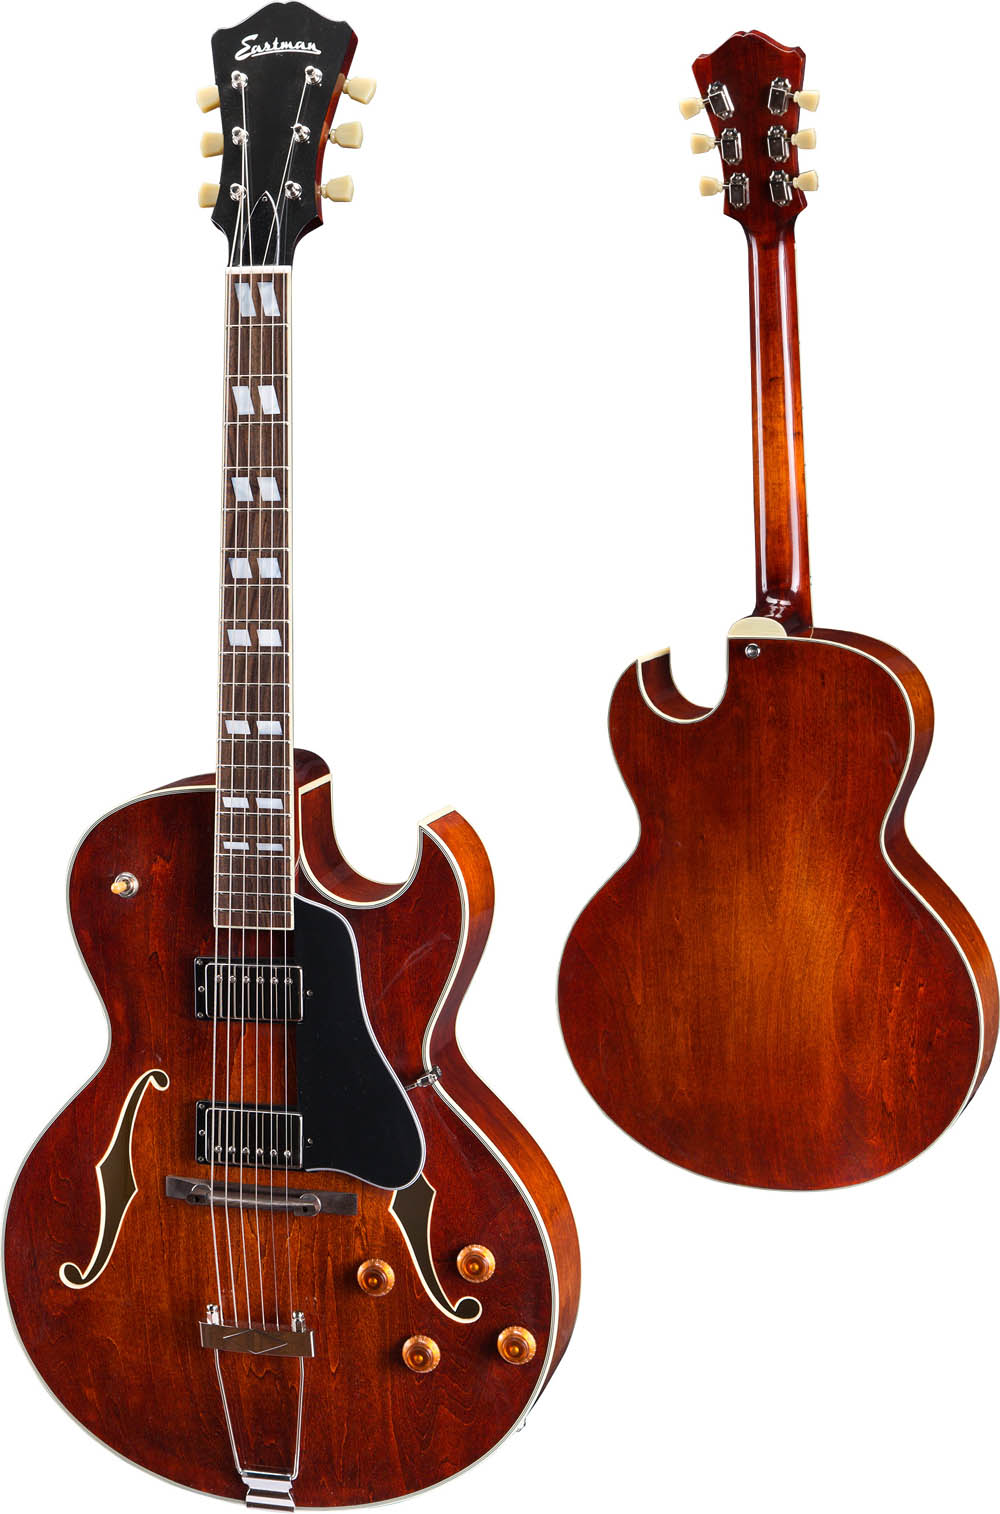 eastman ar372ce cl electric guitar jazz archtop classic finish electric guitars new. Black Bedroom Furniture Sets. Home Design Ideas